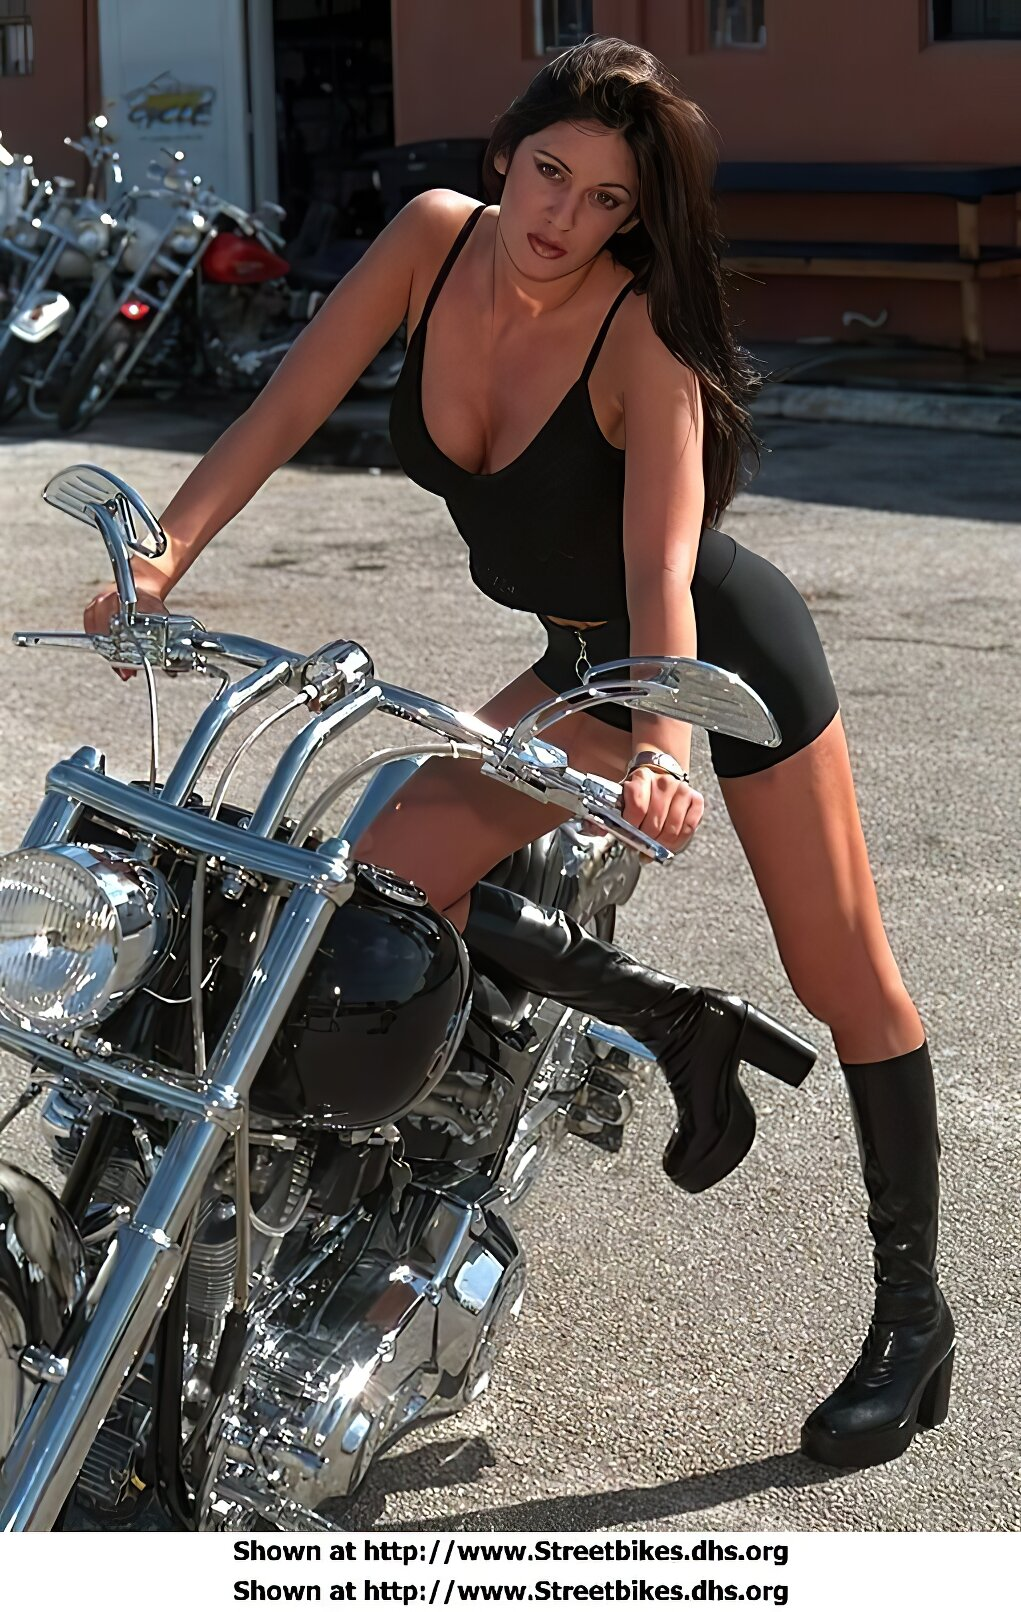 Harley-Davidson Unknown (HD) - ID: 1235